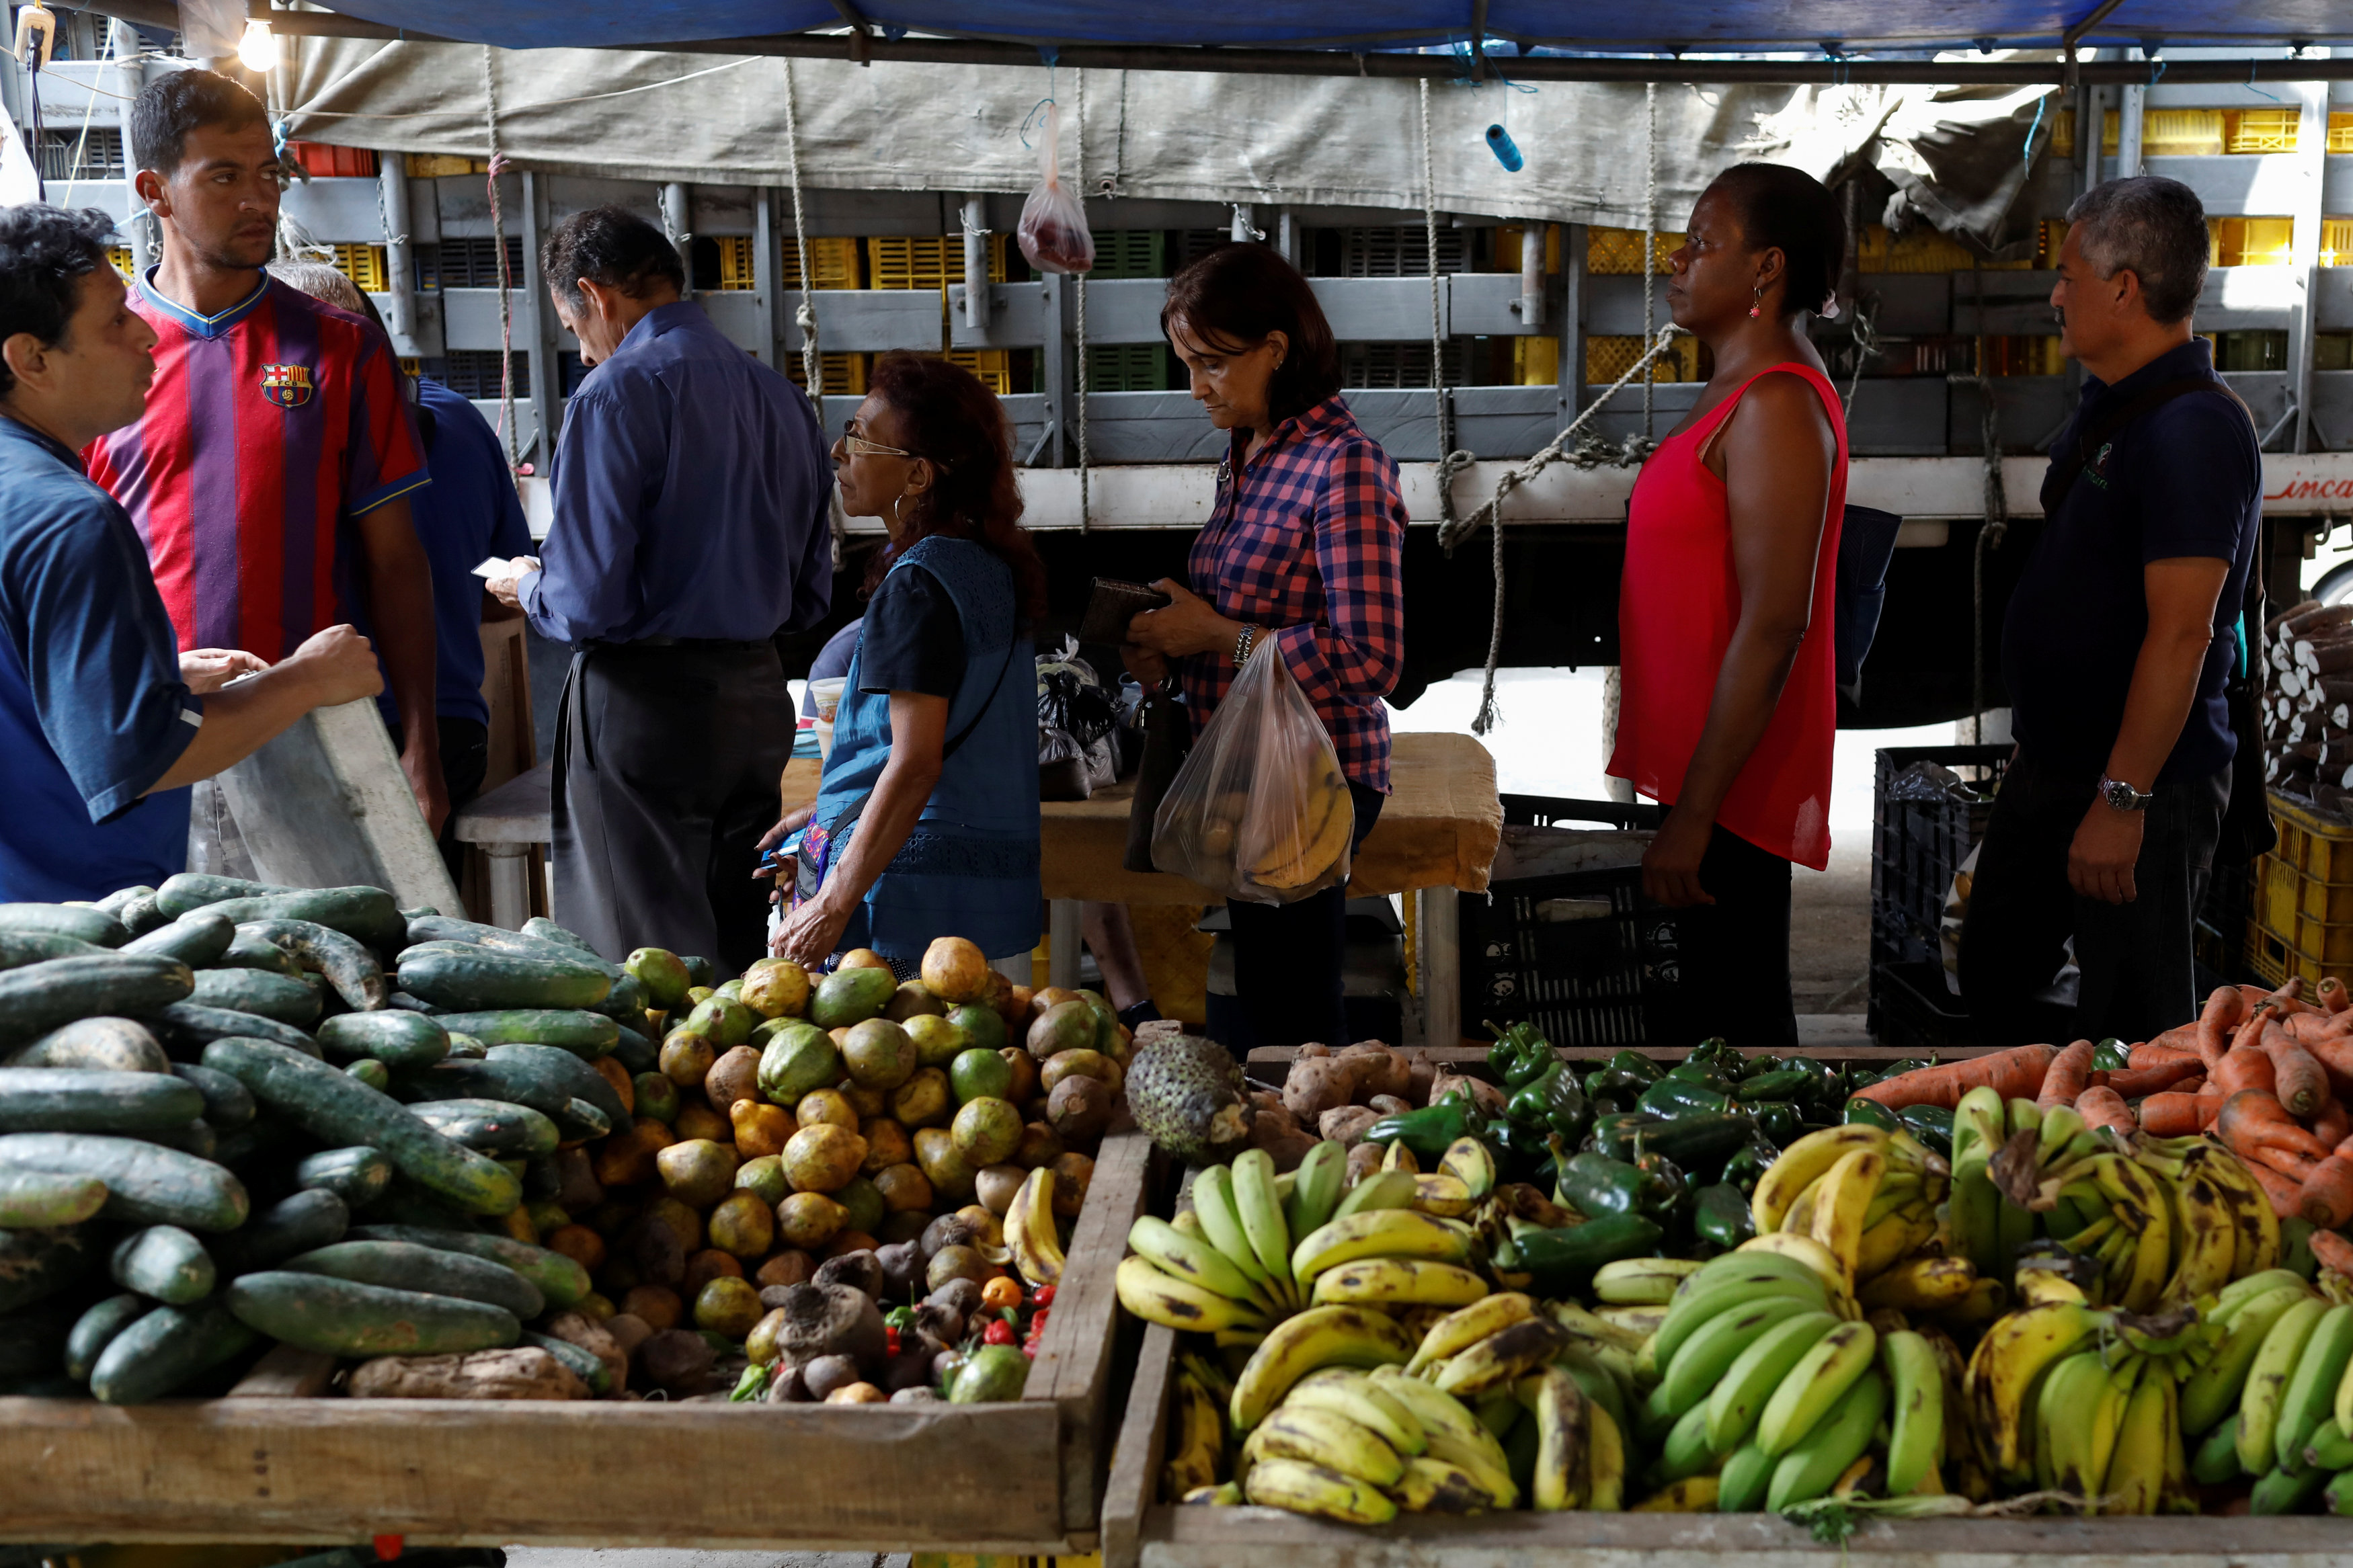 People line up to pay for their fruits and vegetables at a street market in Caracas, Venezuela November 3, 2017.